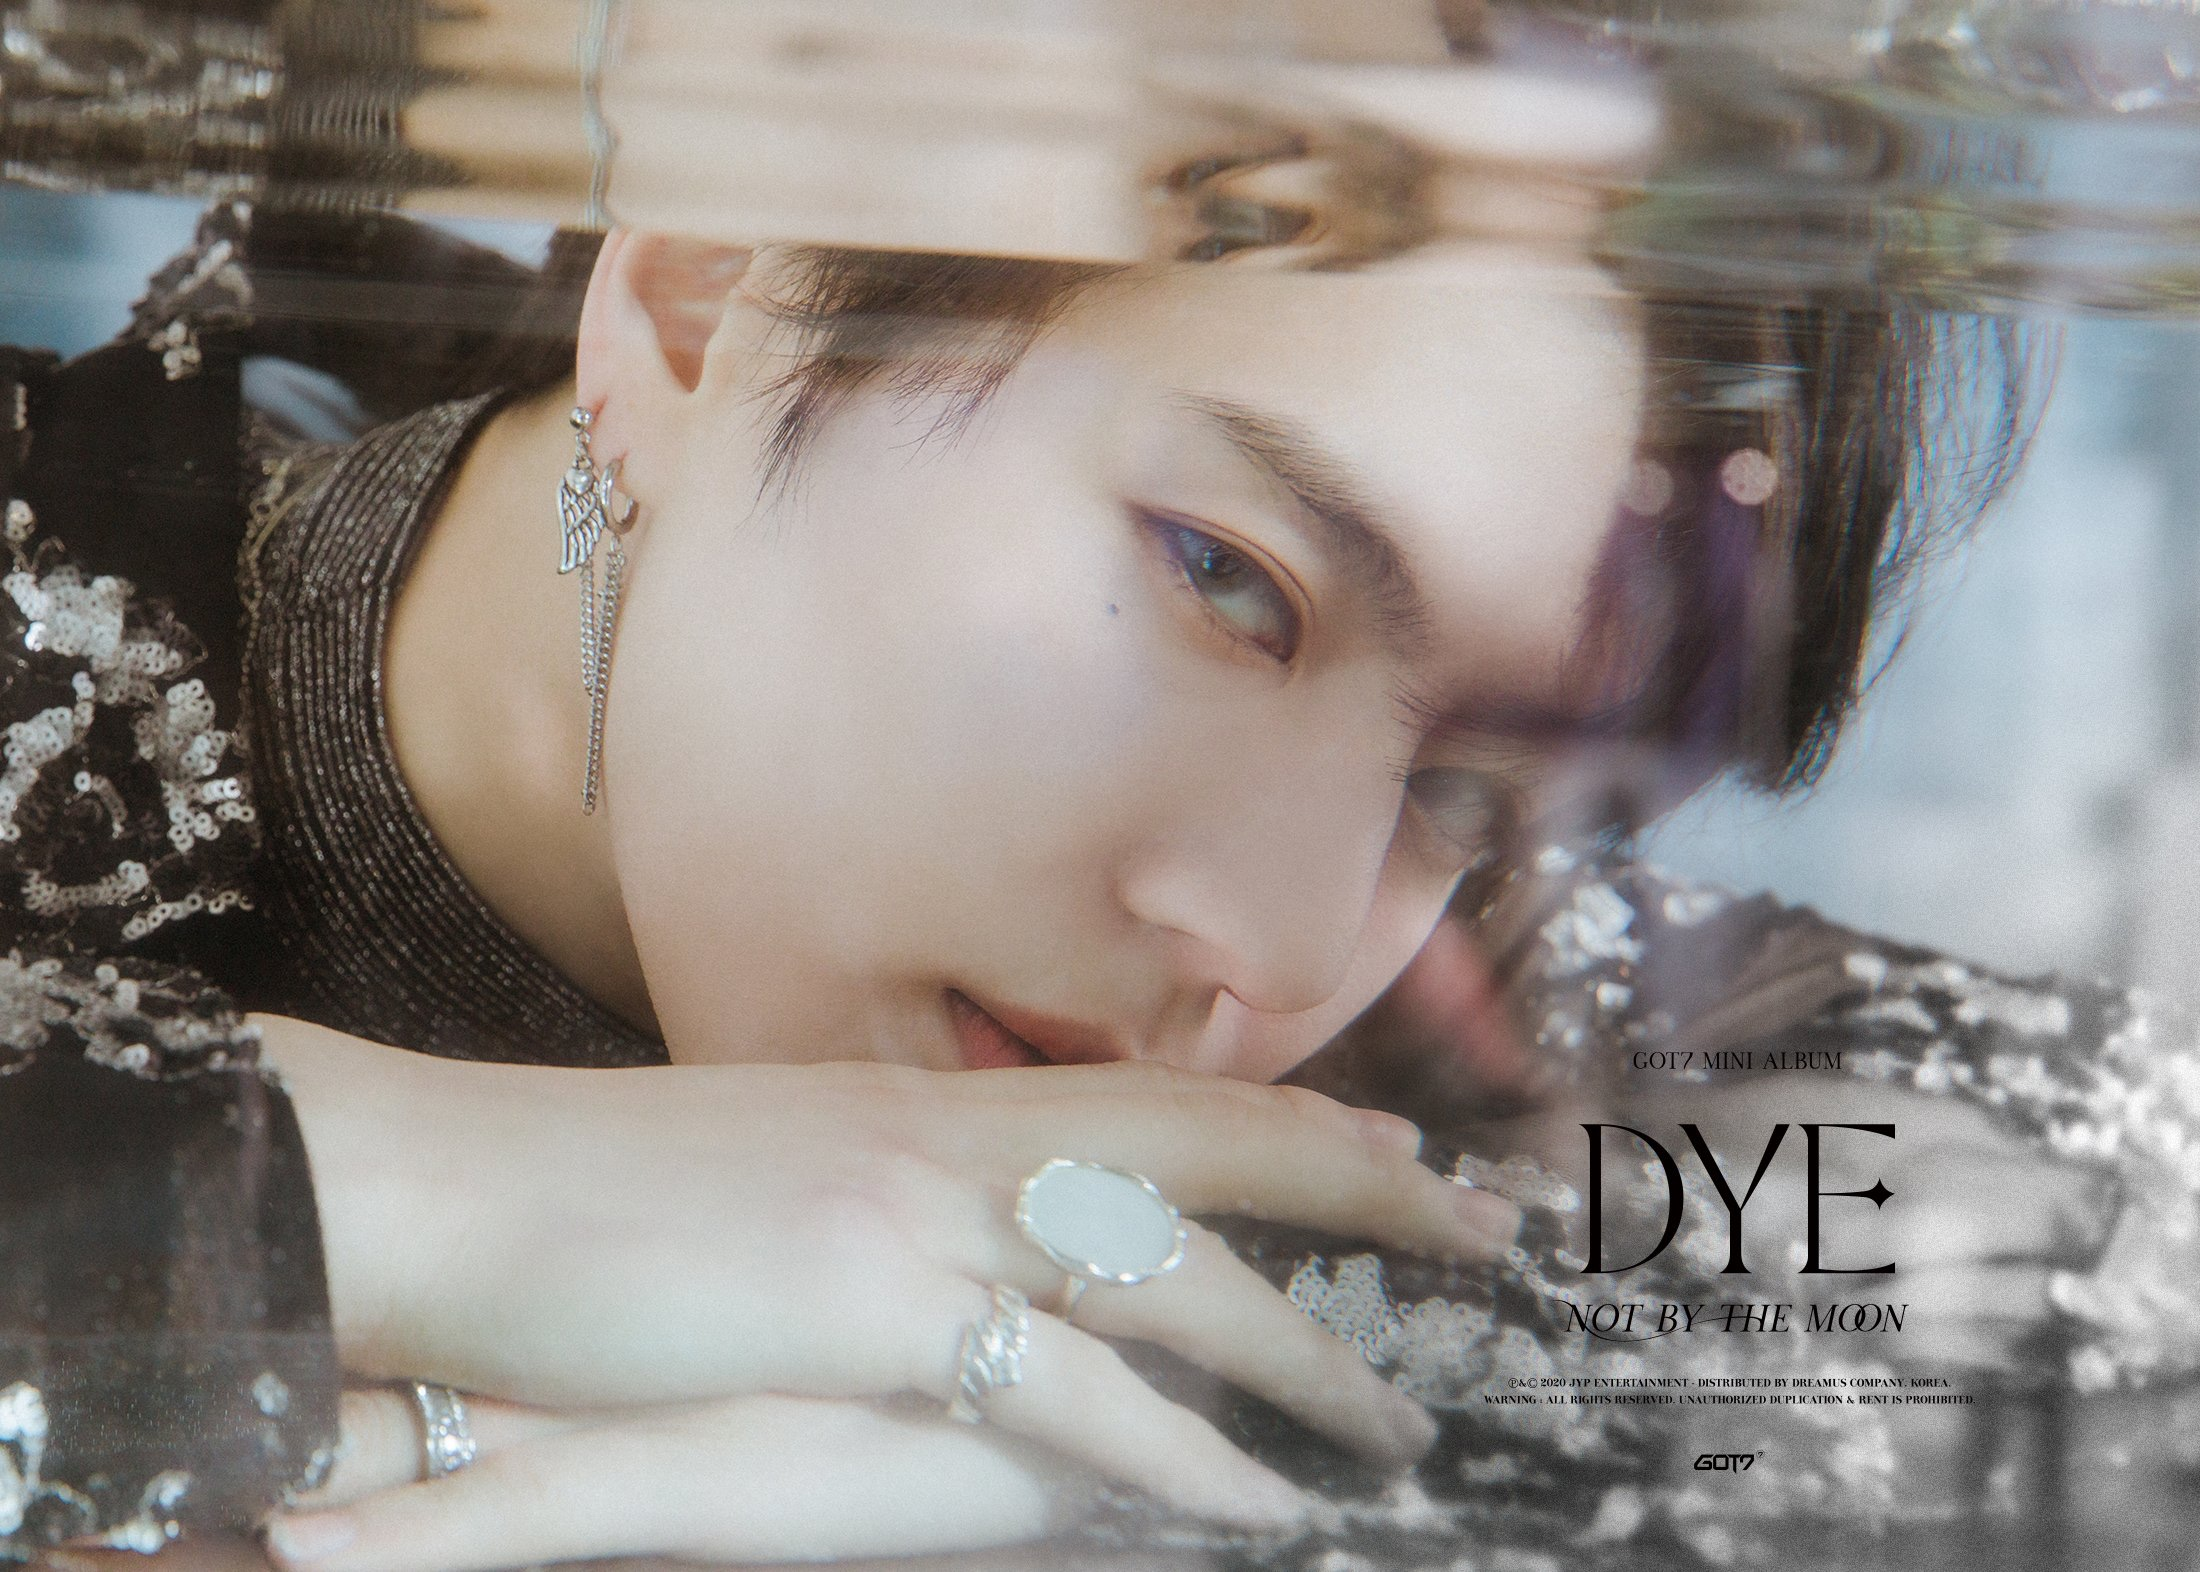 Yugyeom concept photo for DYE.